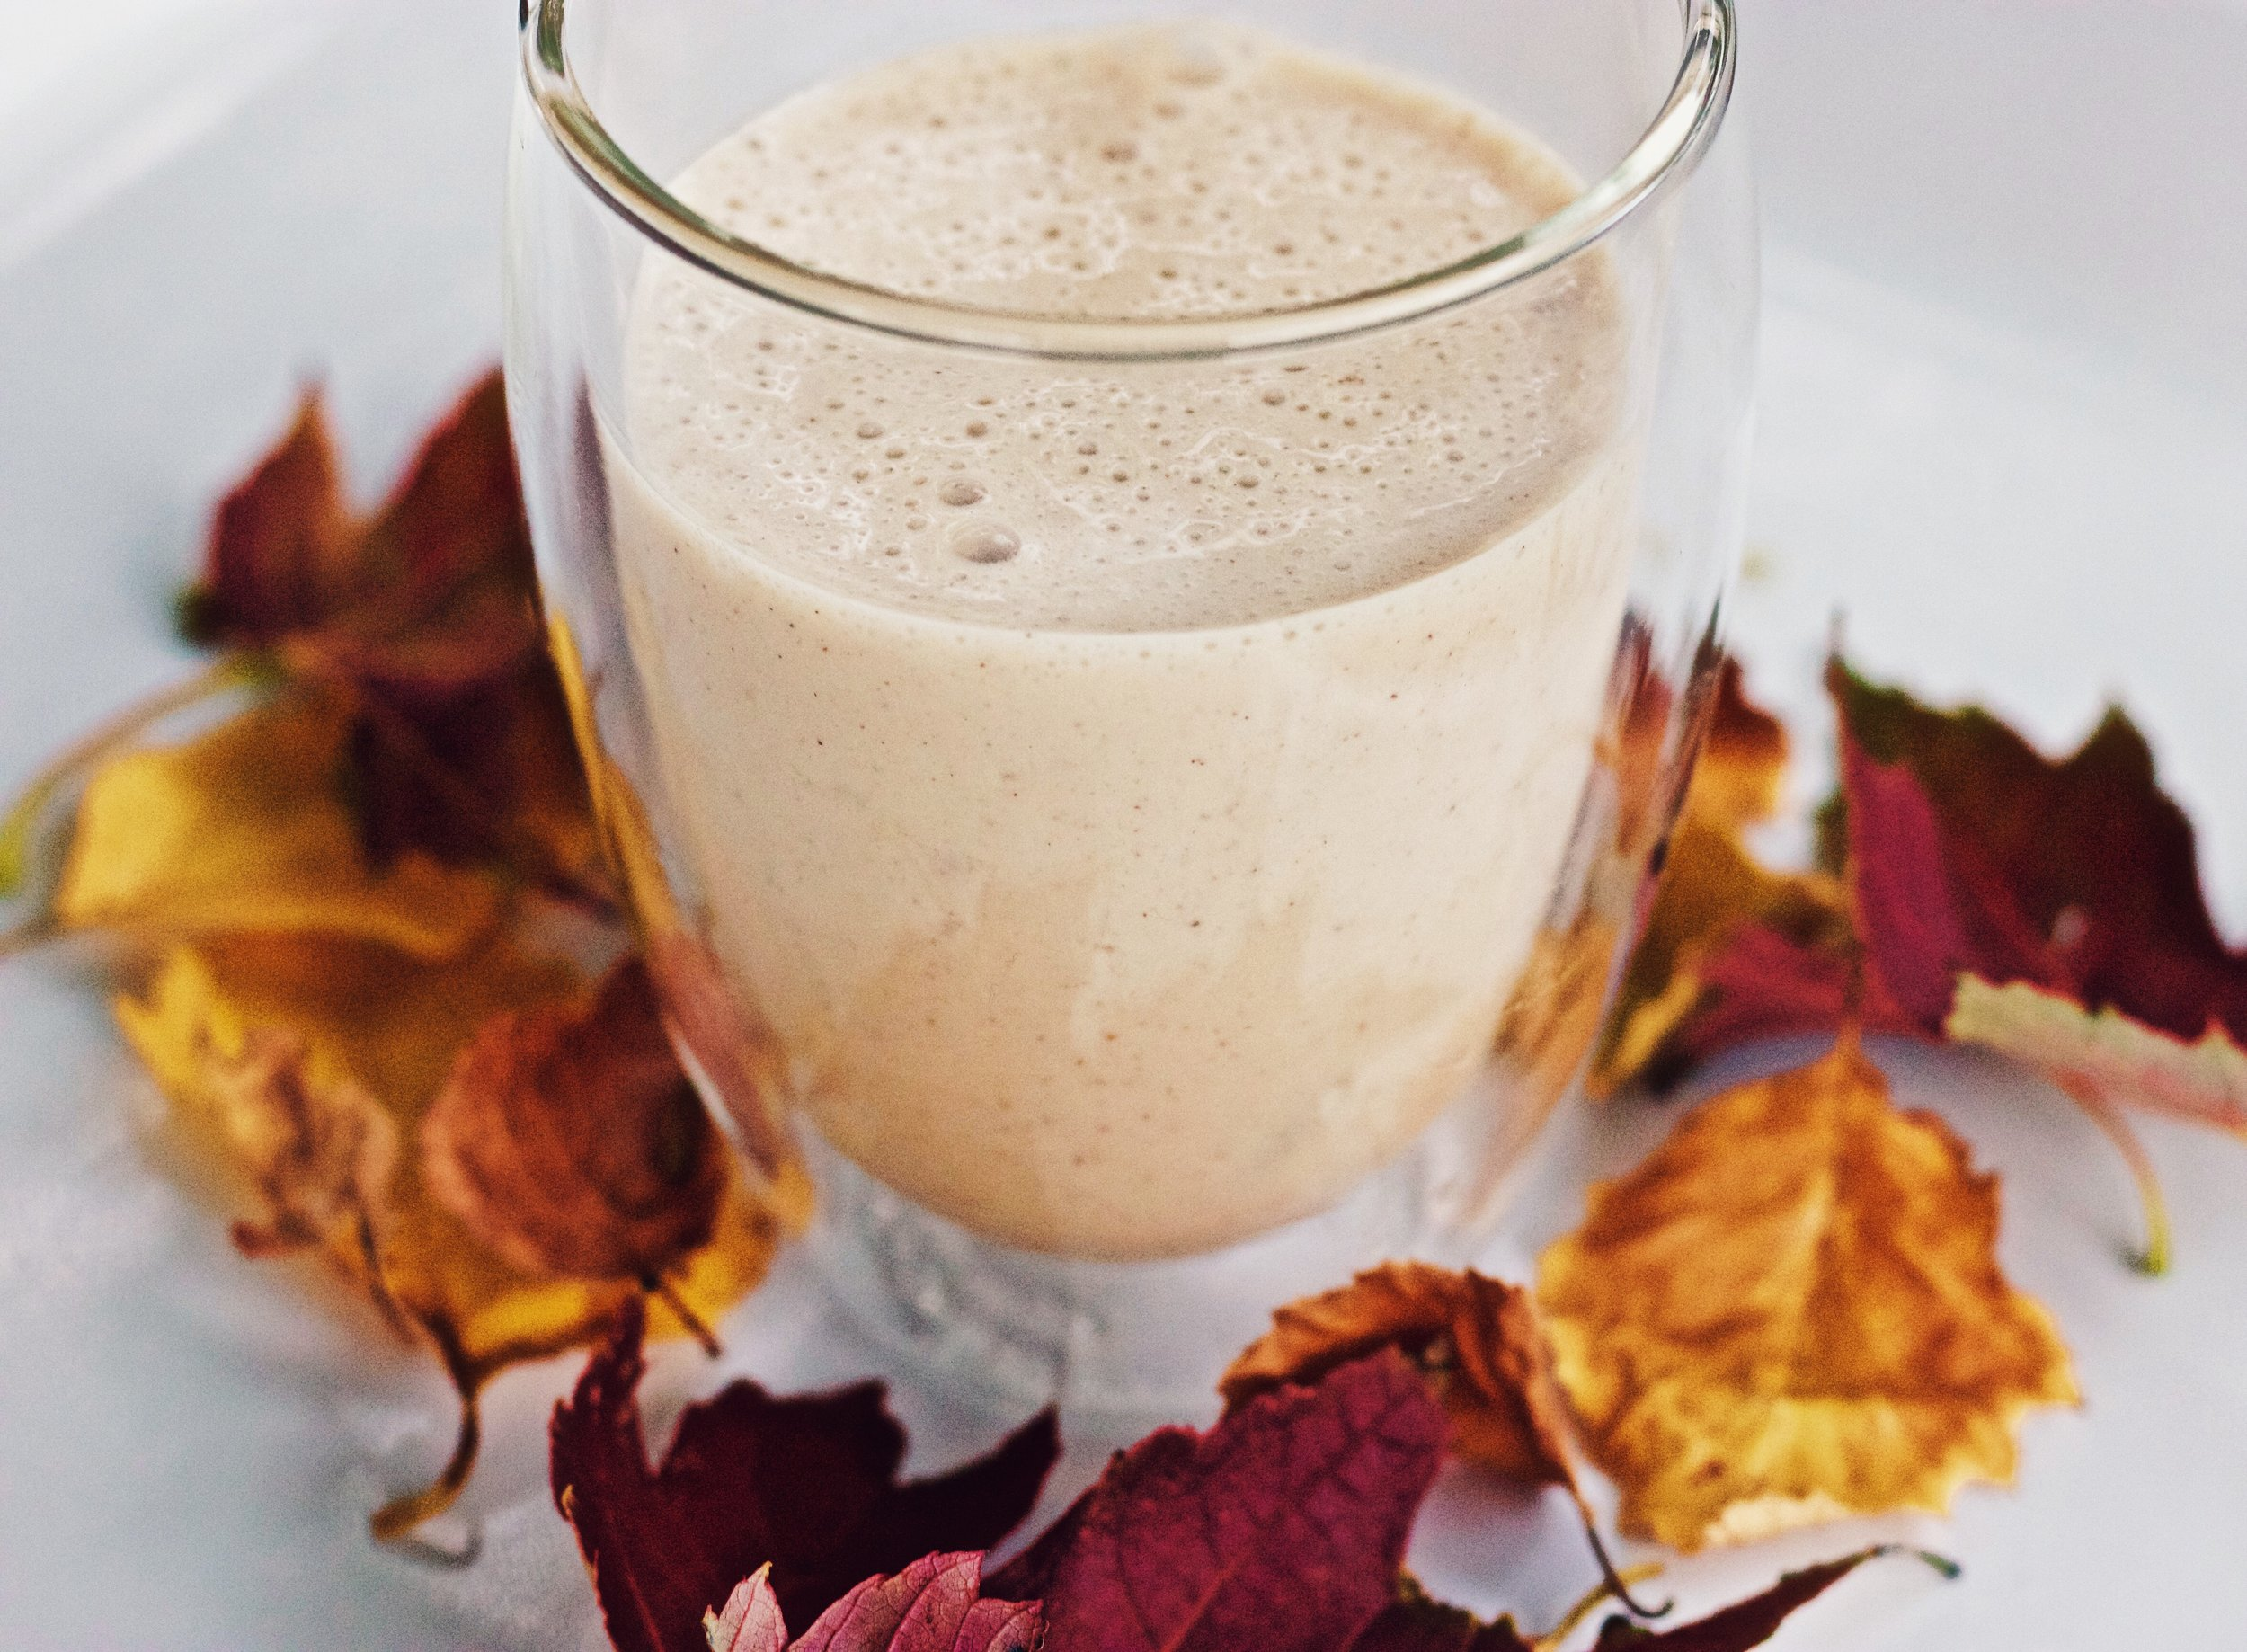 Here is the mug filled with our Pumpkin Spice Smoothie